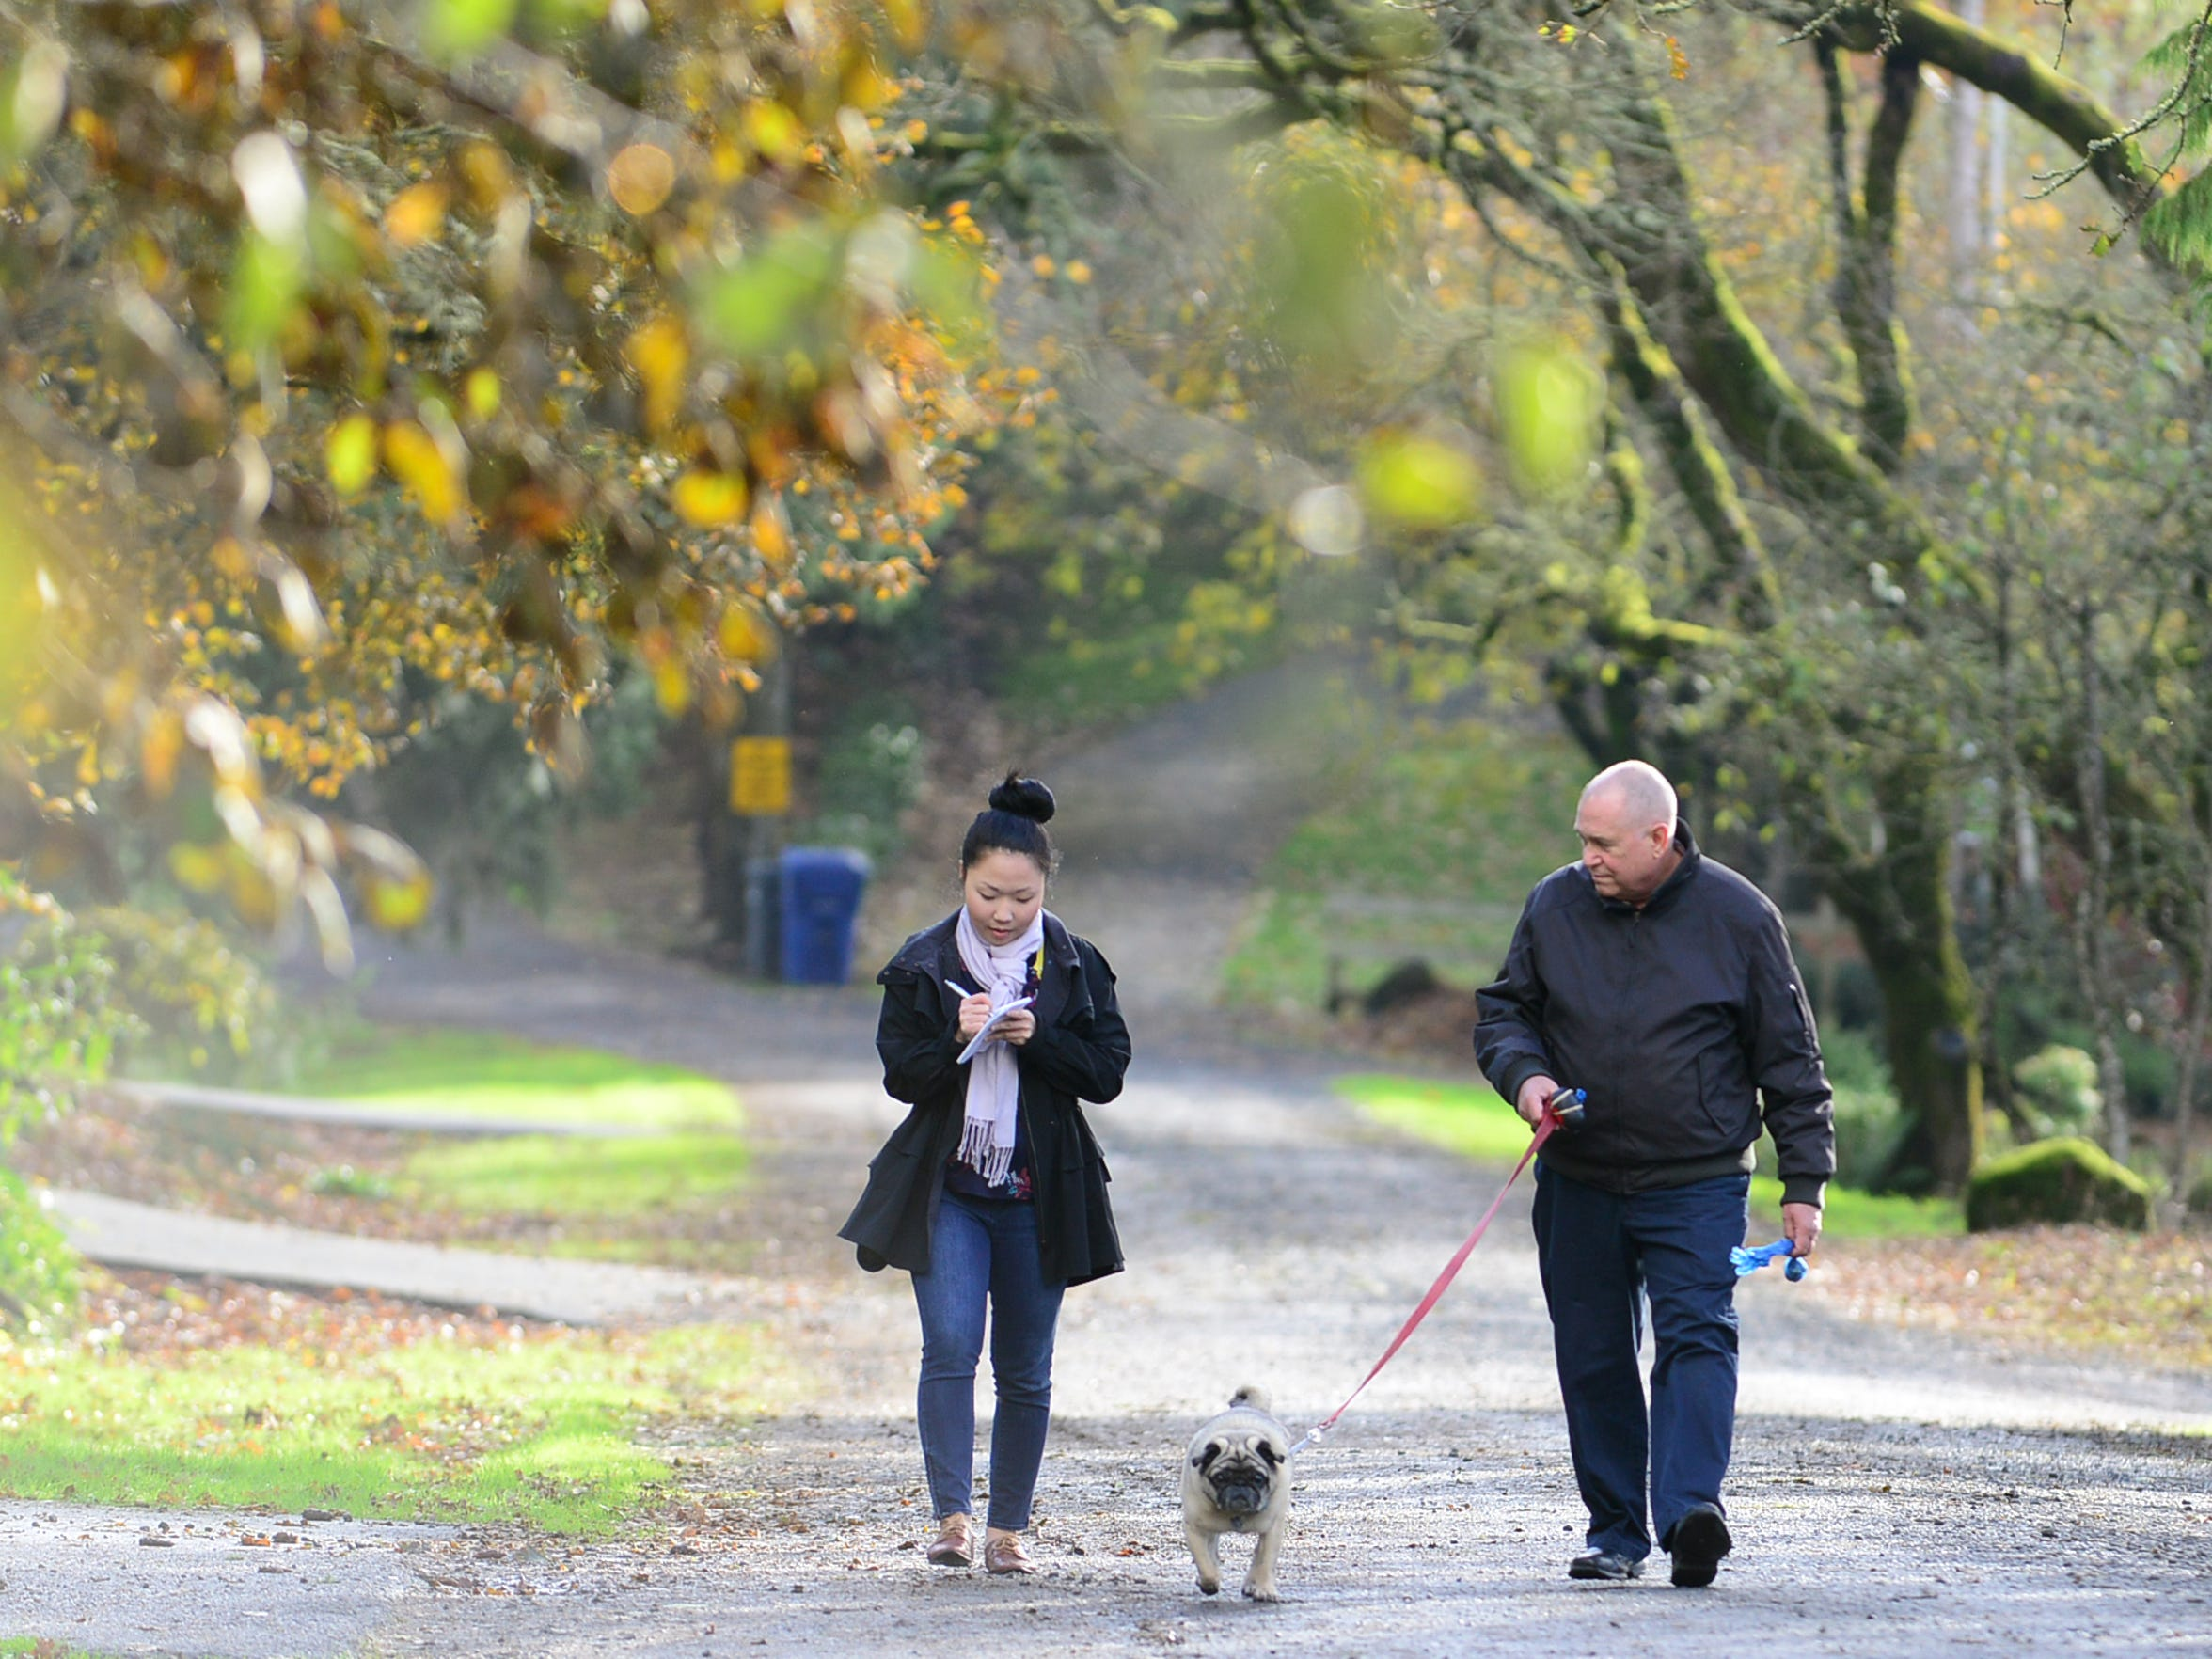 Reporter Saerom Yoo, left, interview Dr. Peter Rasmussen while on a walk with his dog, Pugsley, in Rasmussen's East Salem neighborhood. The retired oncologist and Death With Dignity advocate is facing his own demise from a brain tumor.